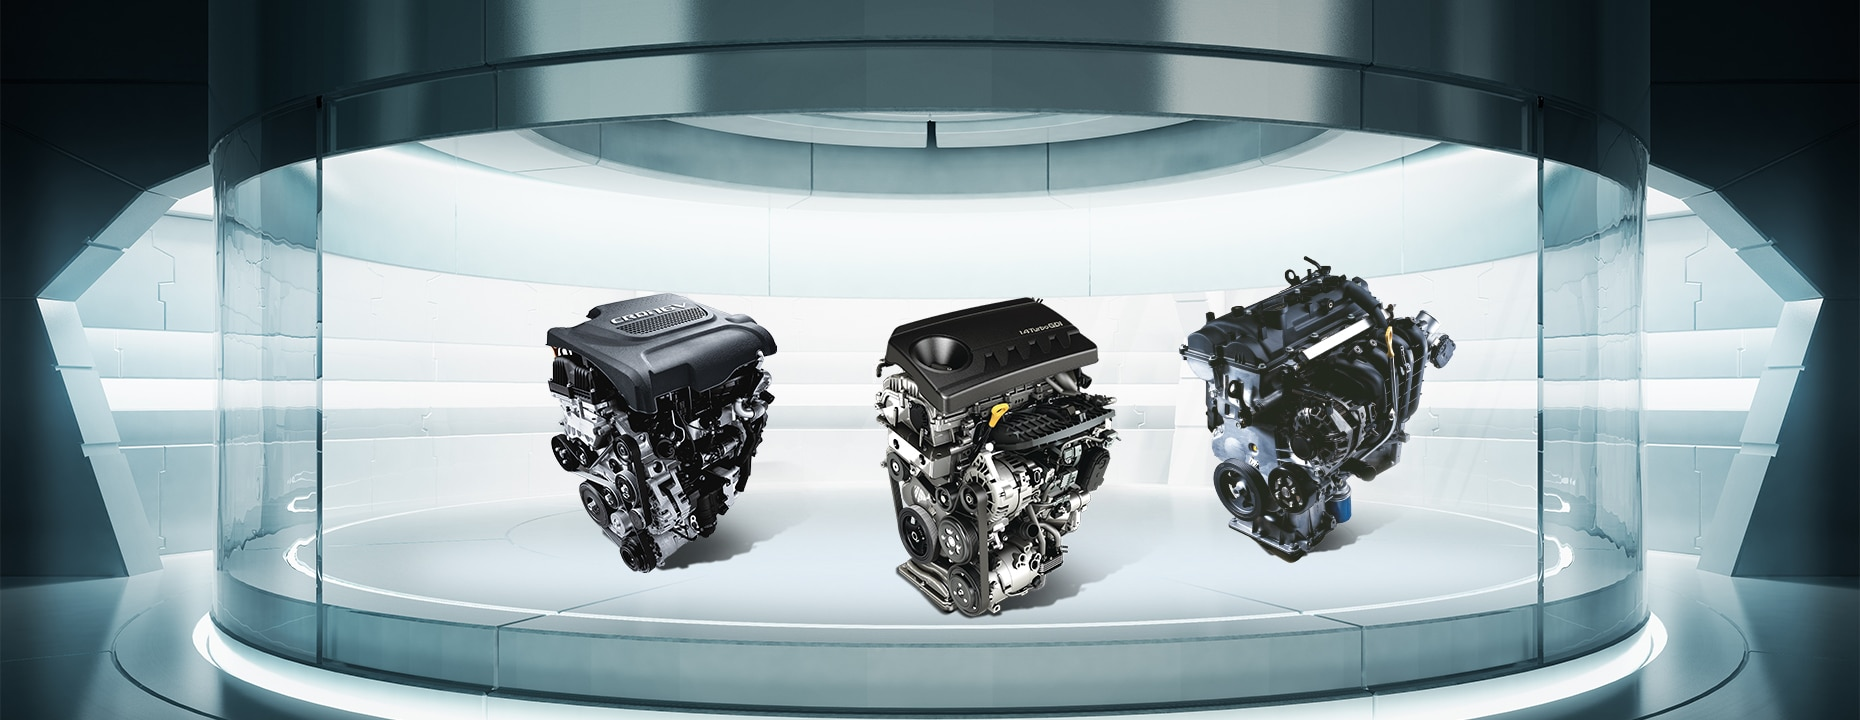 Diesel, turbo and CNG powertrains